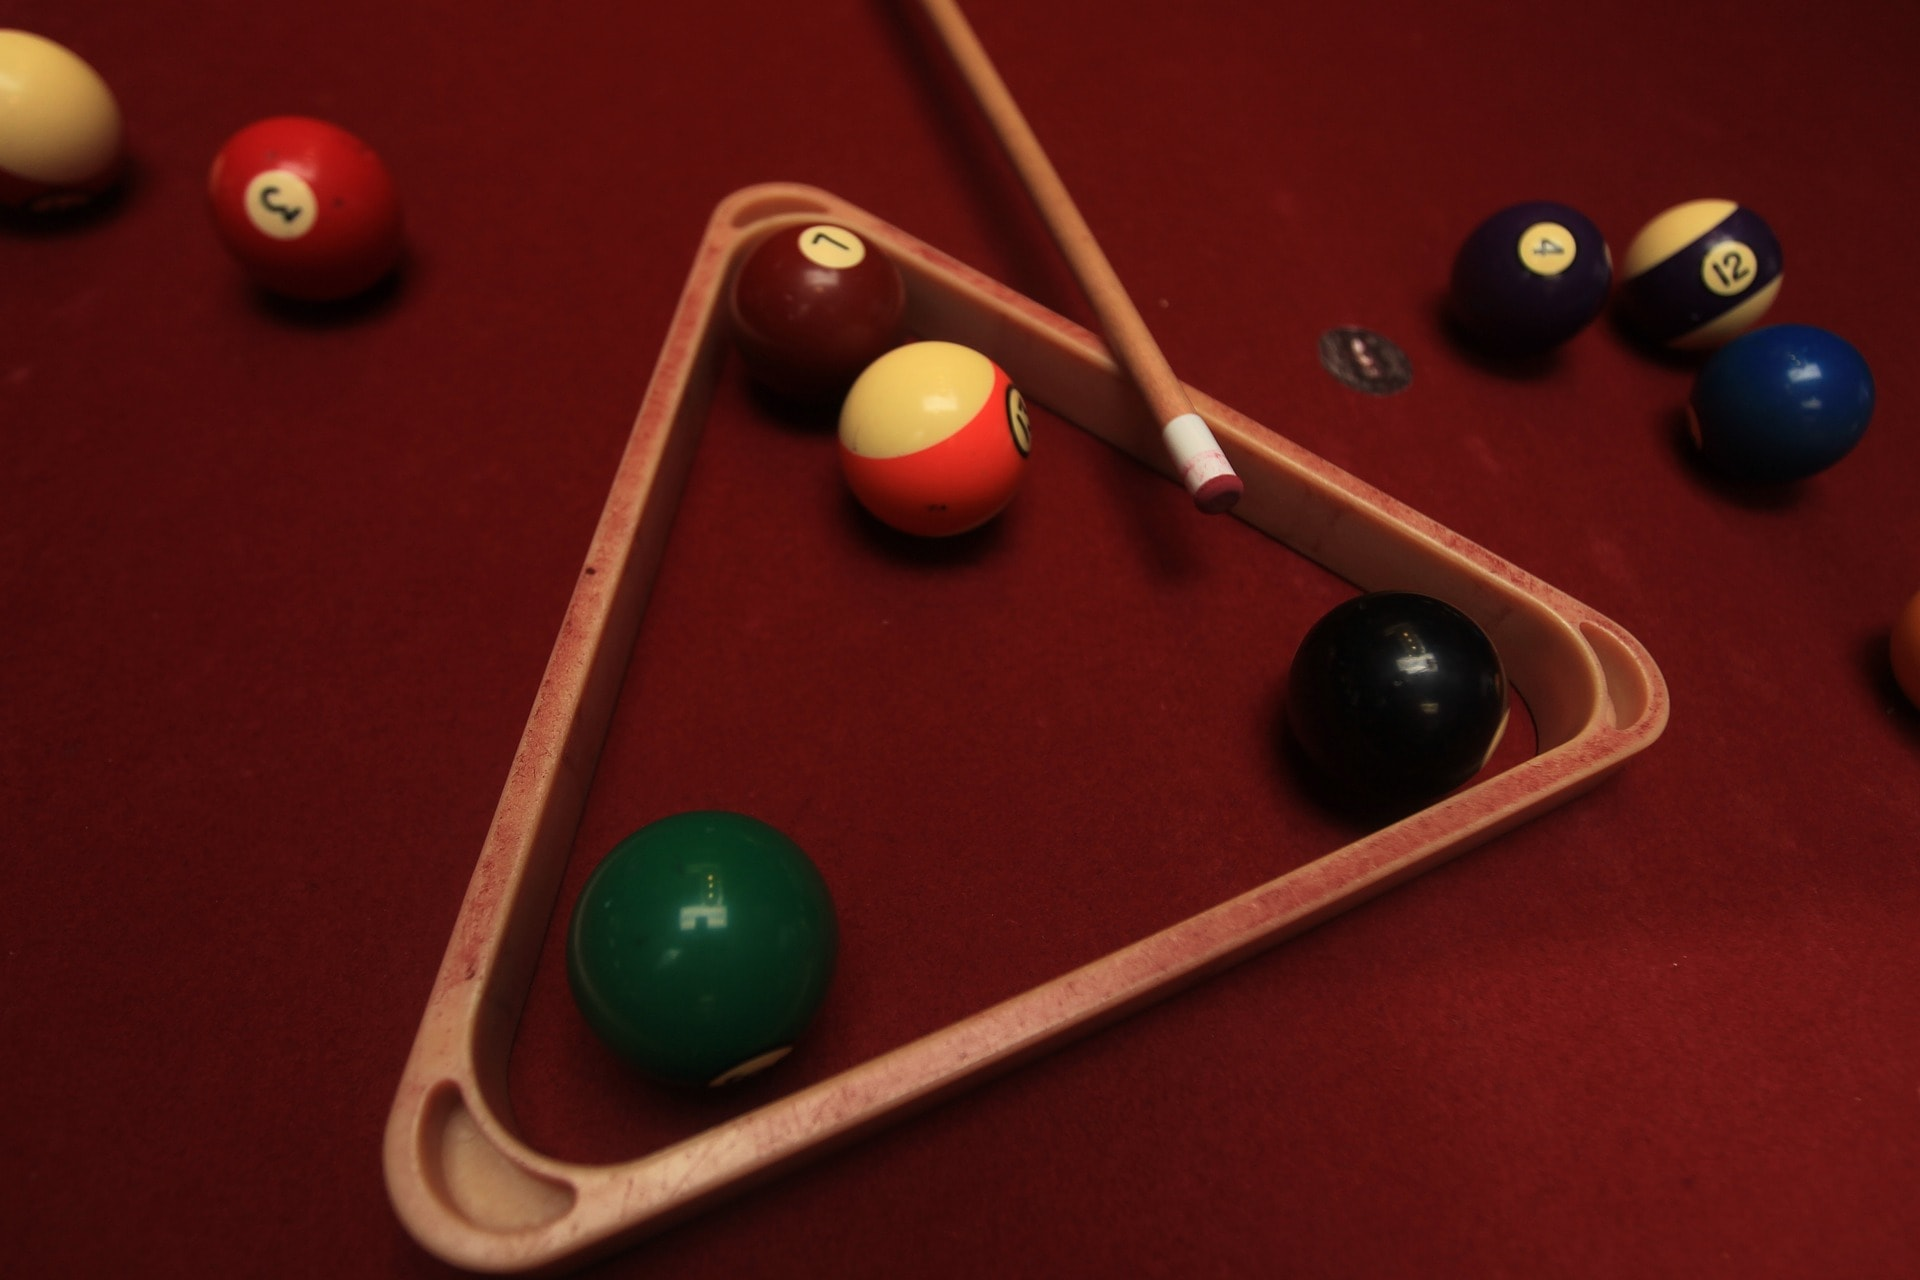 Pool balls and a pool cue resting on a pool table.